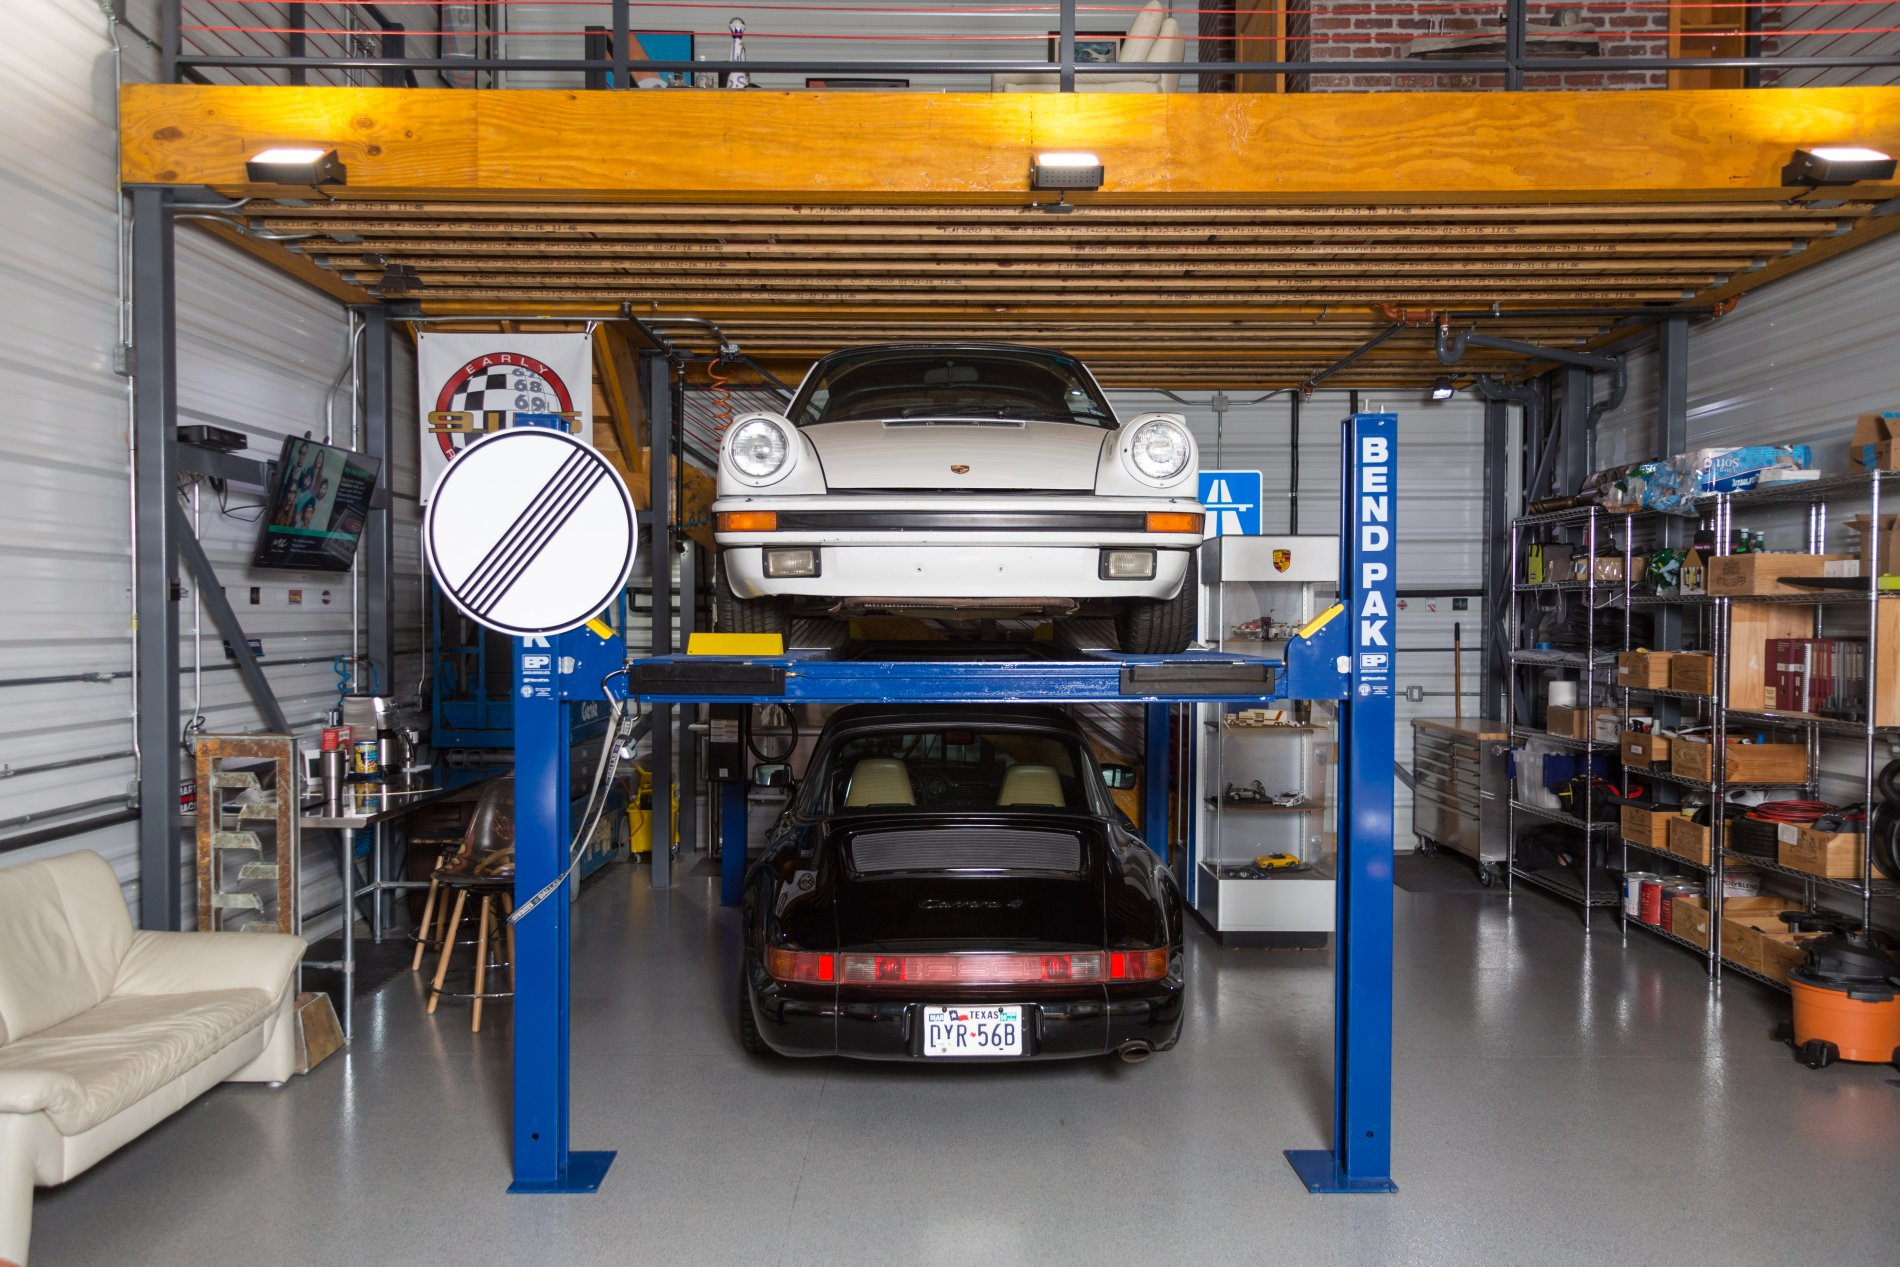 Garage Car Lift For Storage Garages Garages Of Texas